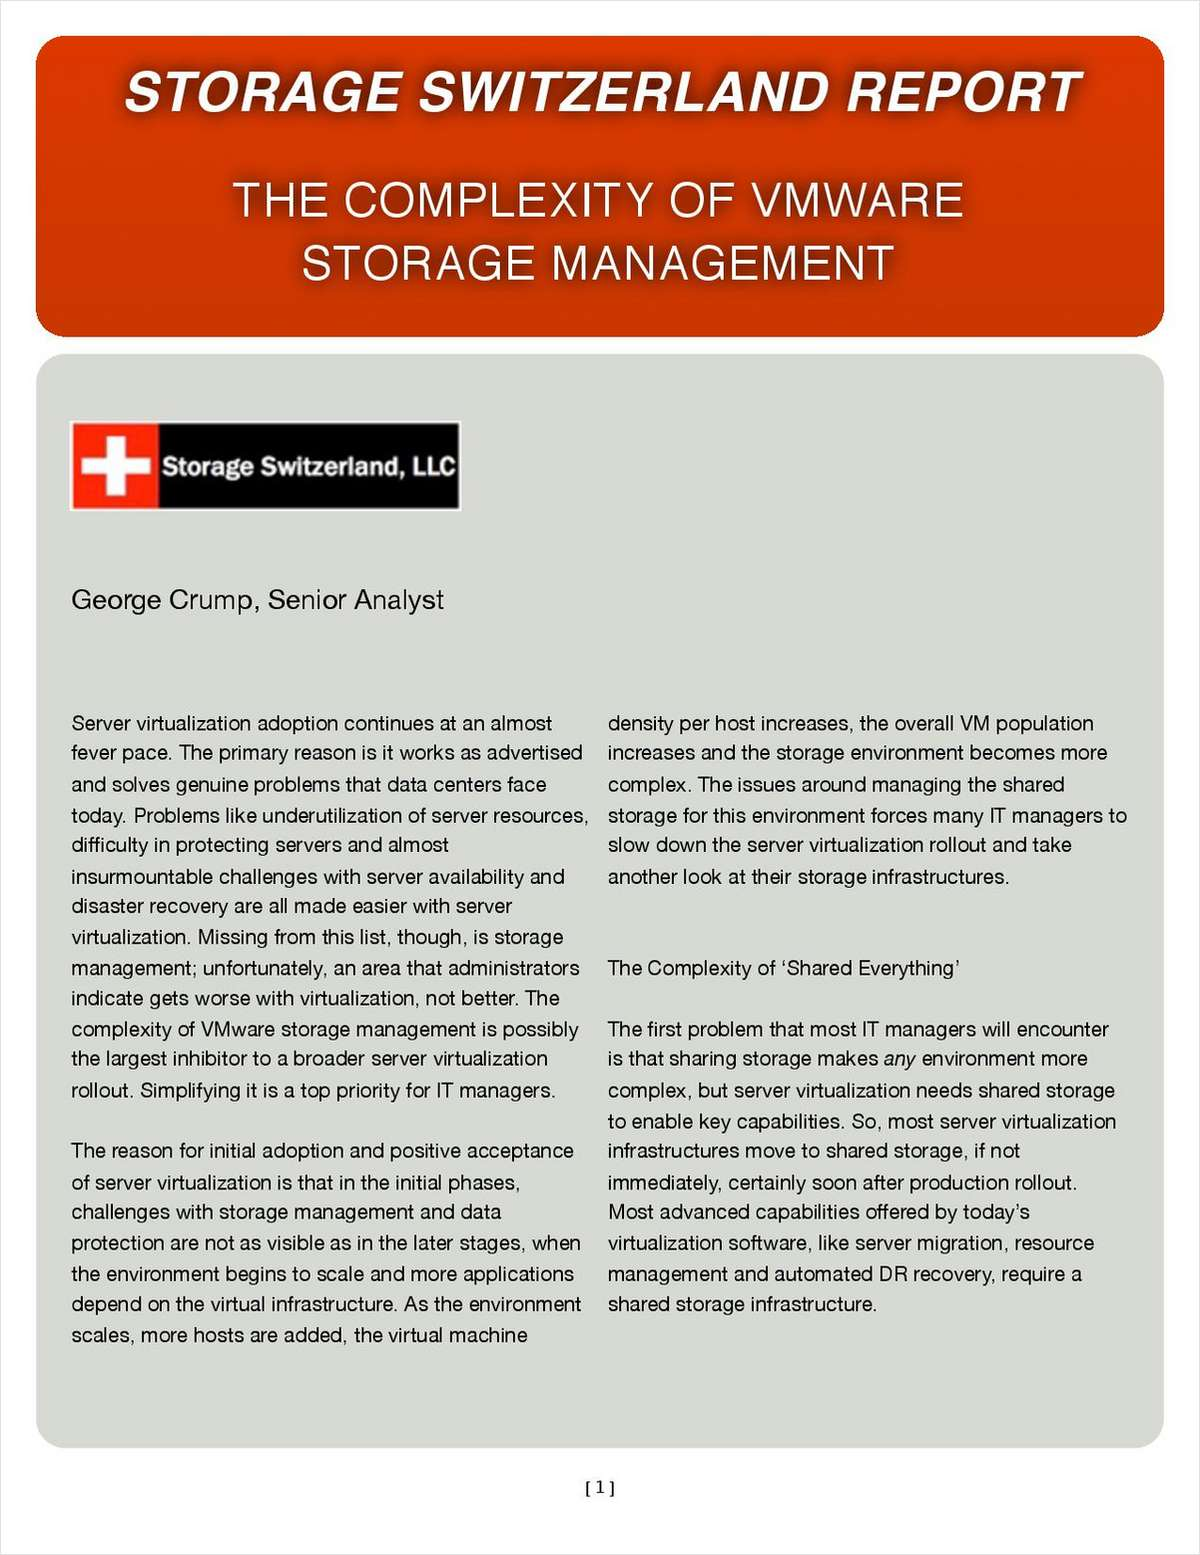 The Complexity of VMware Storage Management